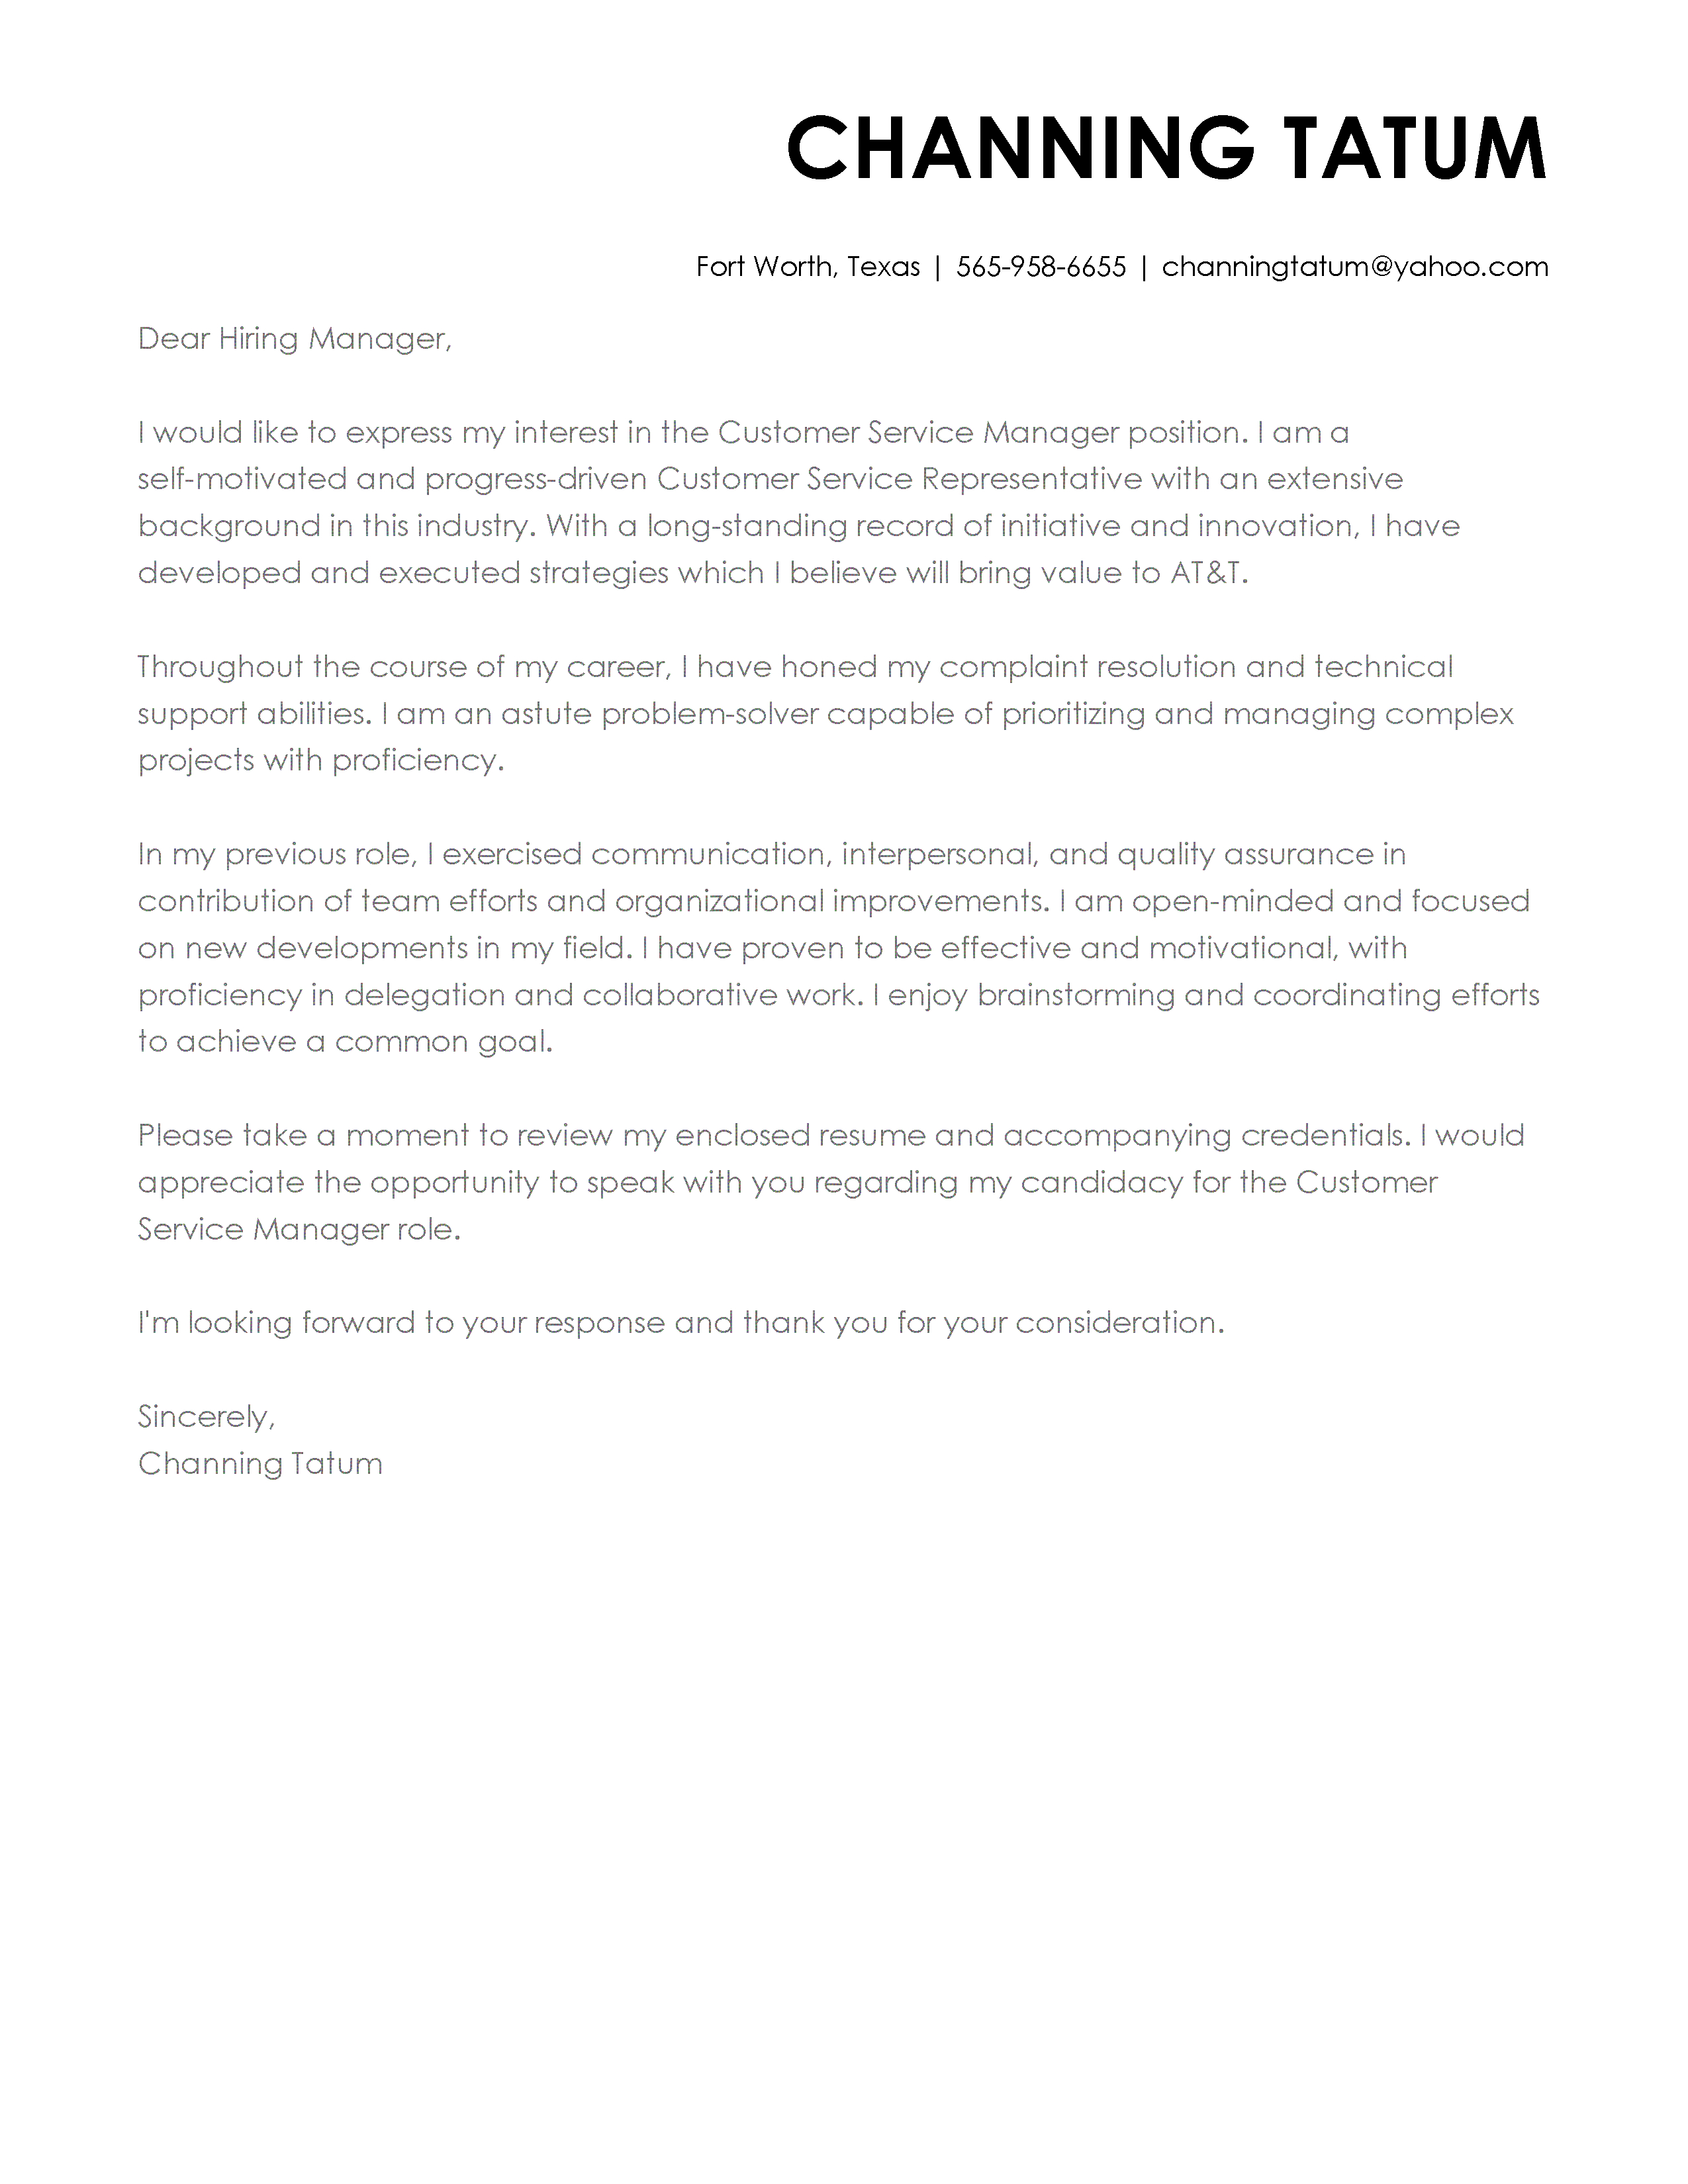 Cover Letters Template  Cover Letter Templates My Perfect Cover Letter